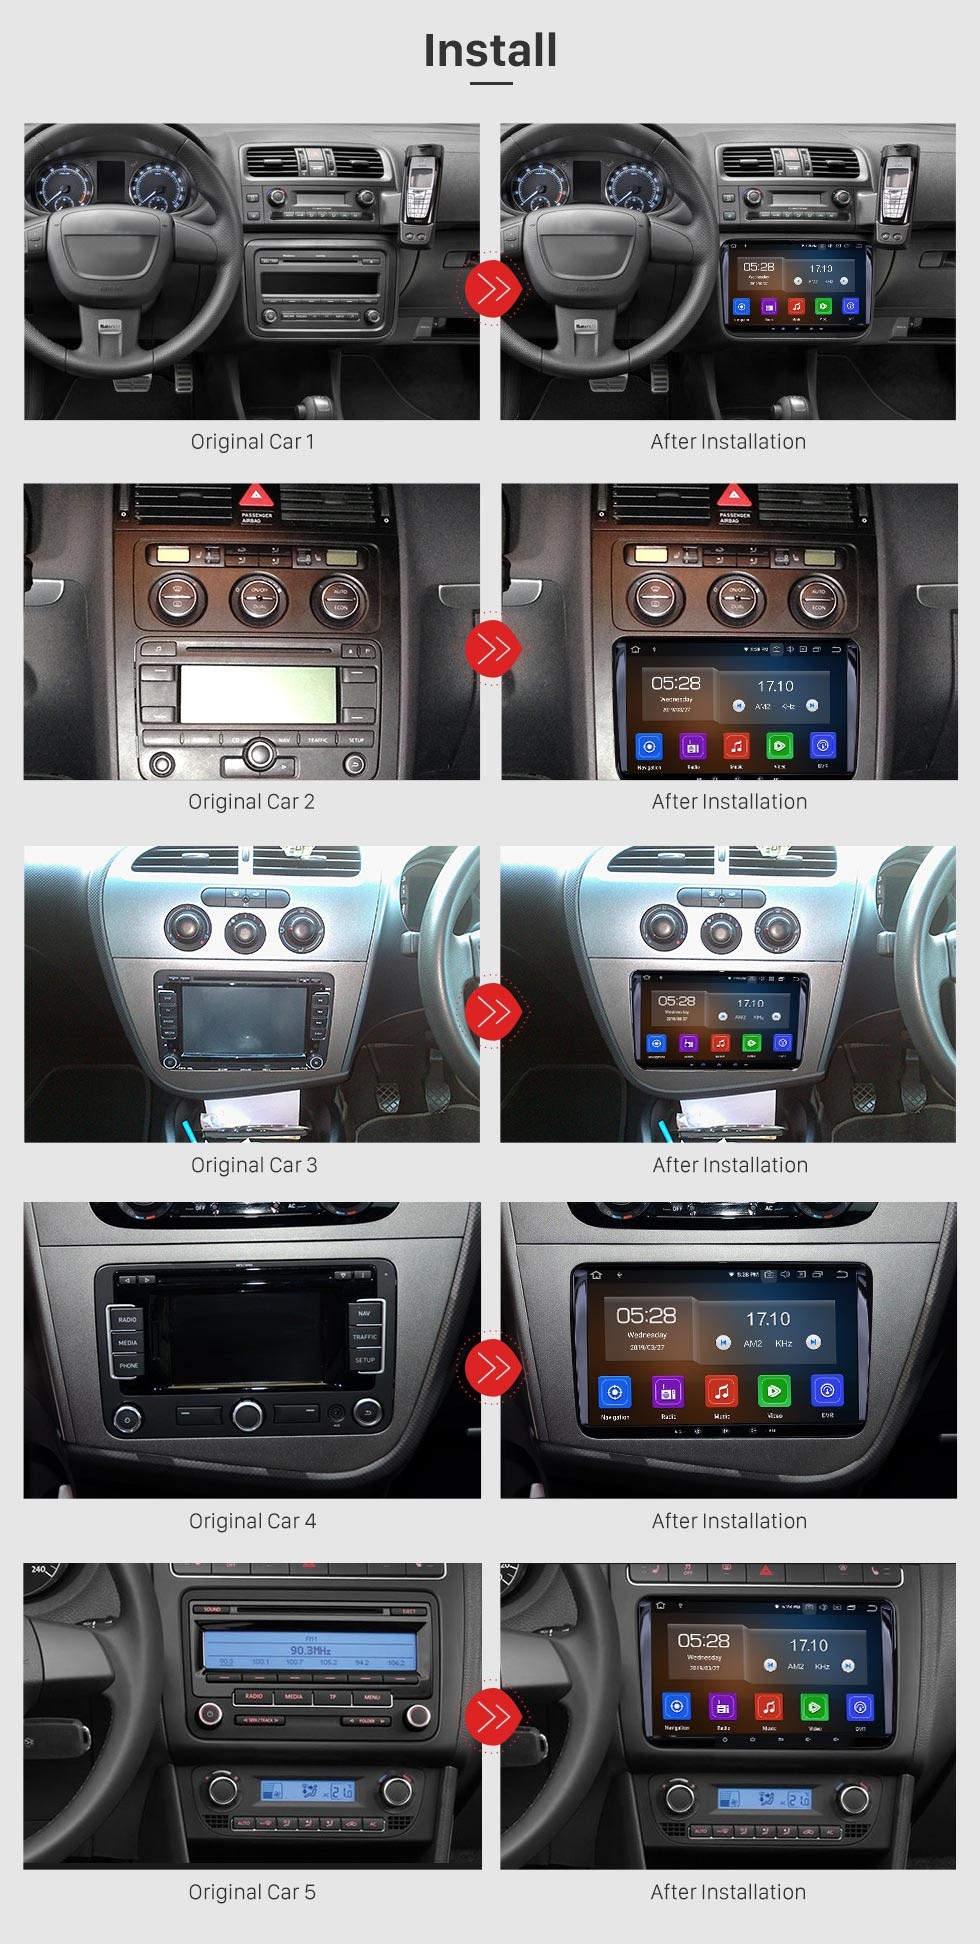 Seicane Android 10.0 GPS Navigation system for 2009 2010 2011 VW Volkswagen Passat B6 with DVD Player Radio Bluetooth Mirror Link OBD2 DVR Rearview Camera Steering wheel control 3G WiFi